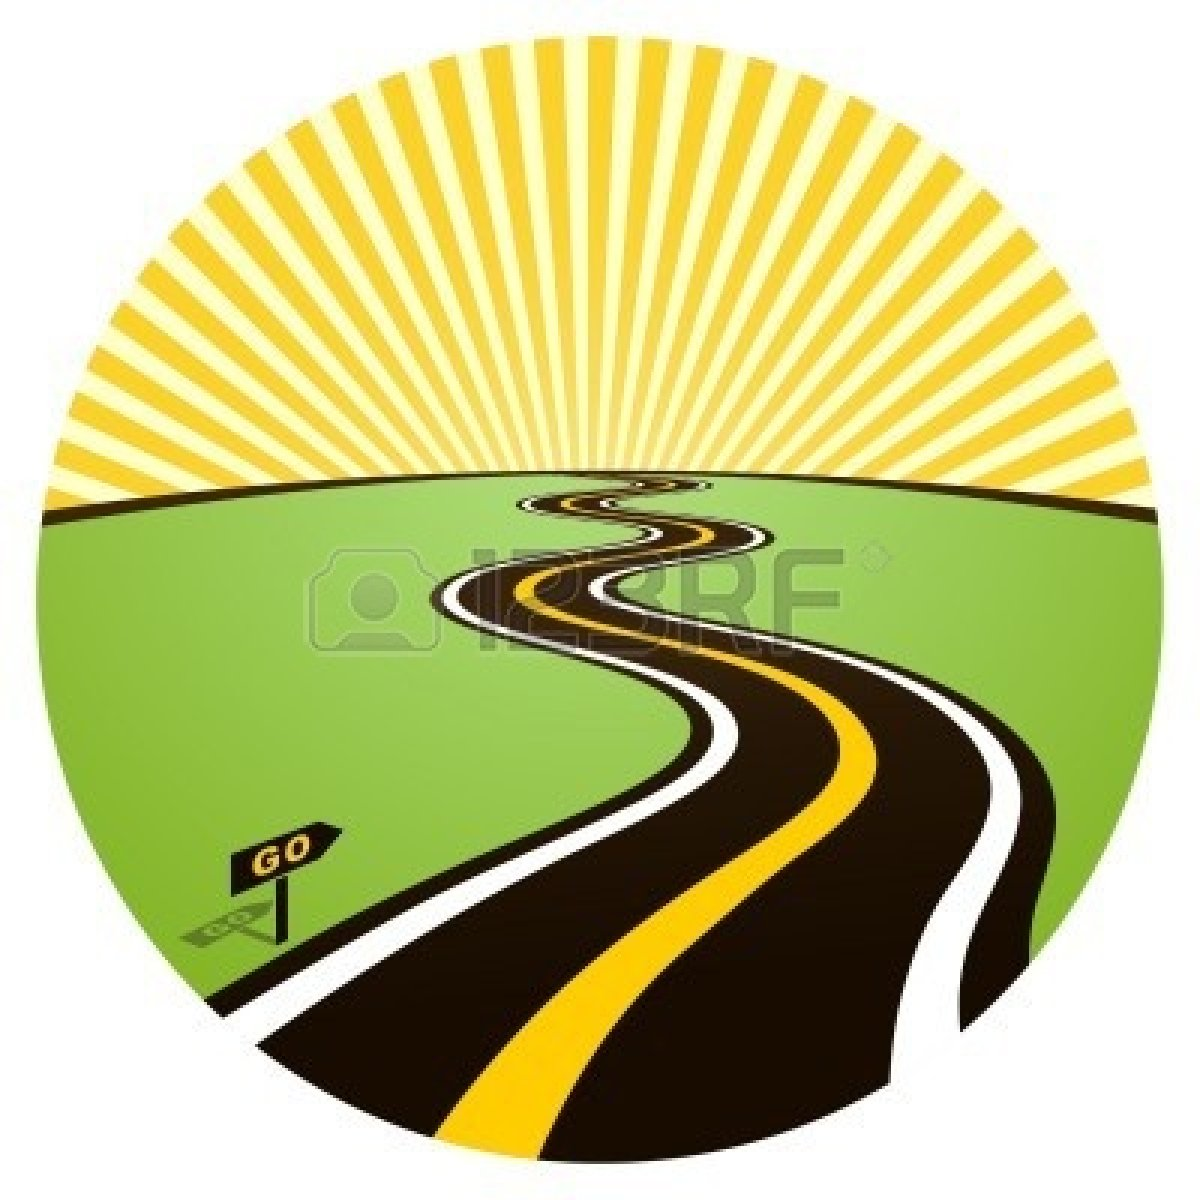 Curve clipart journey road Images Clipart Highway  art